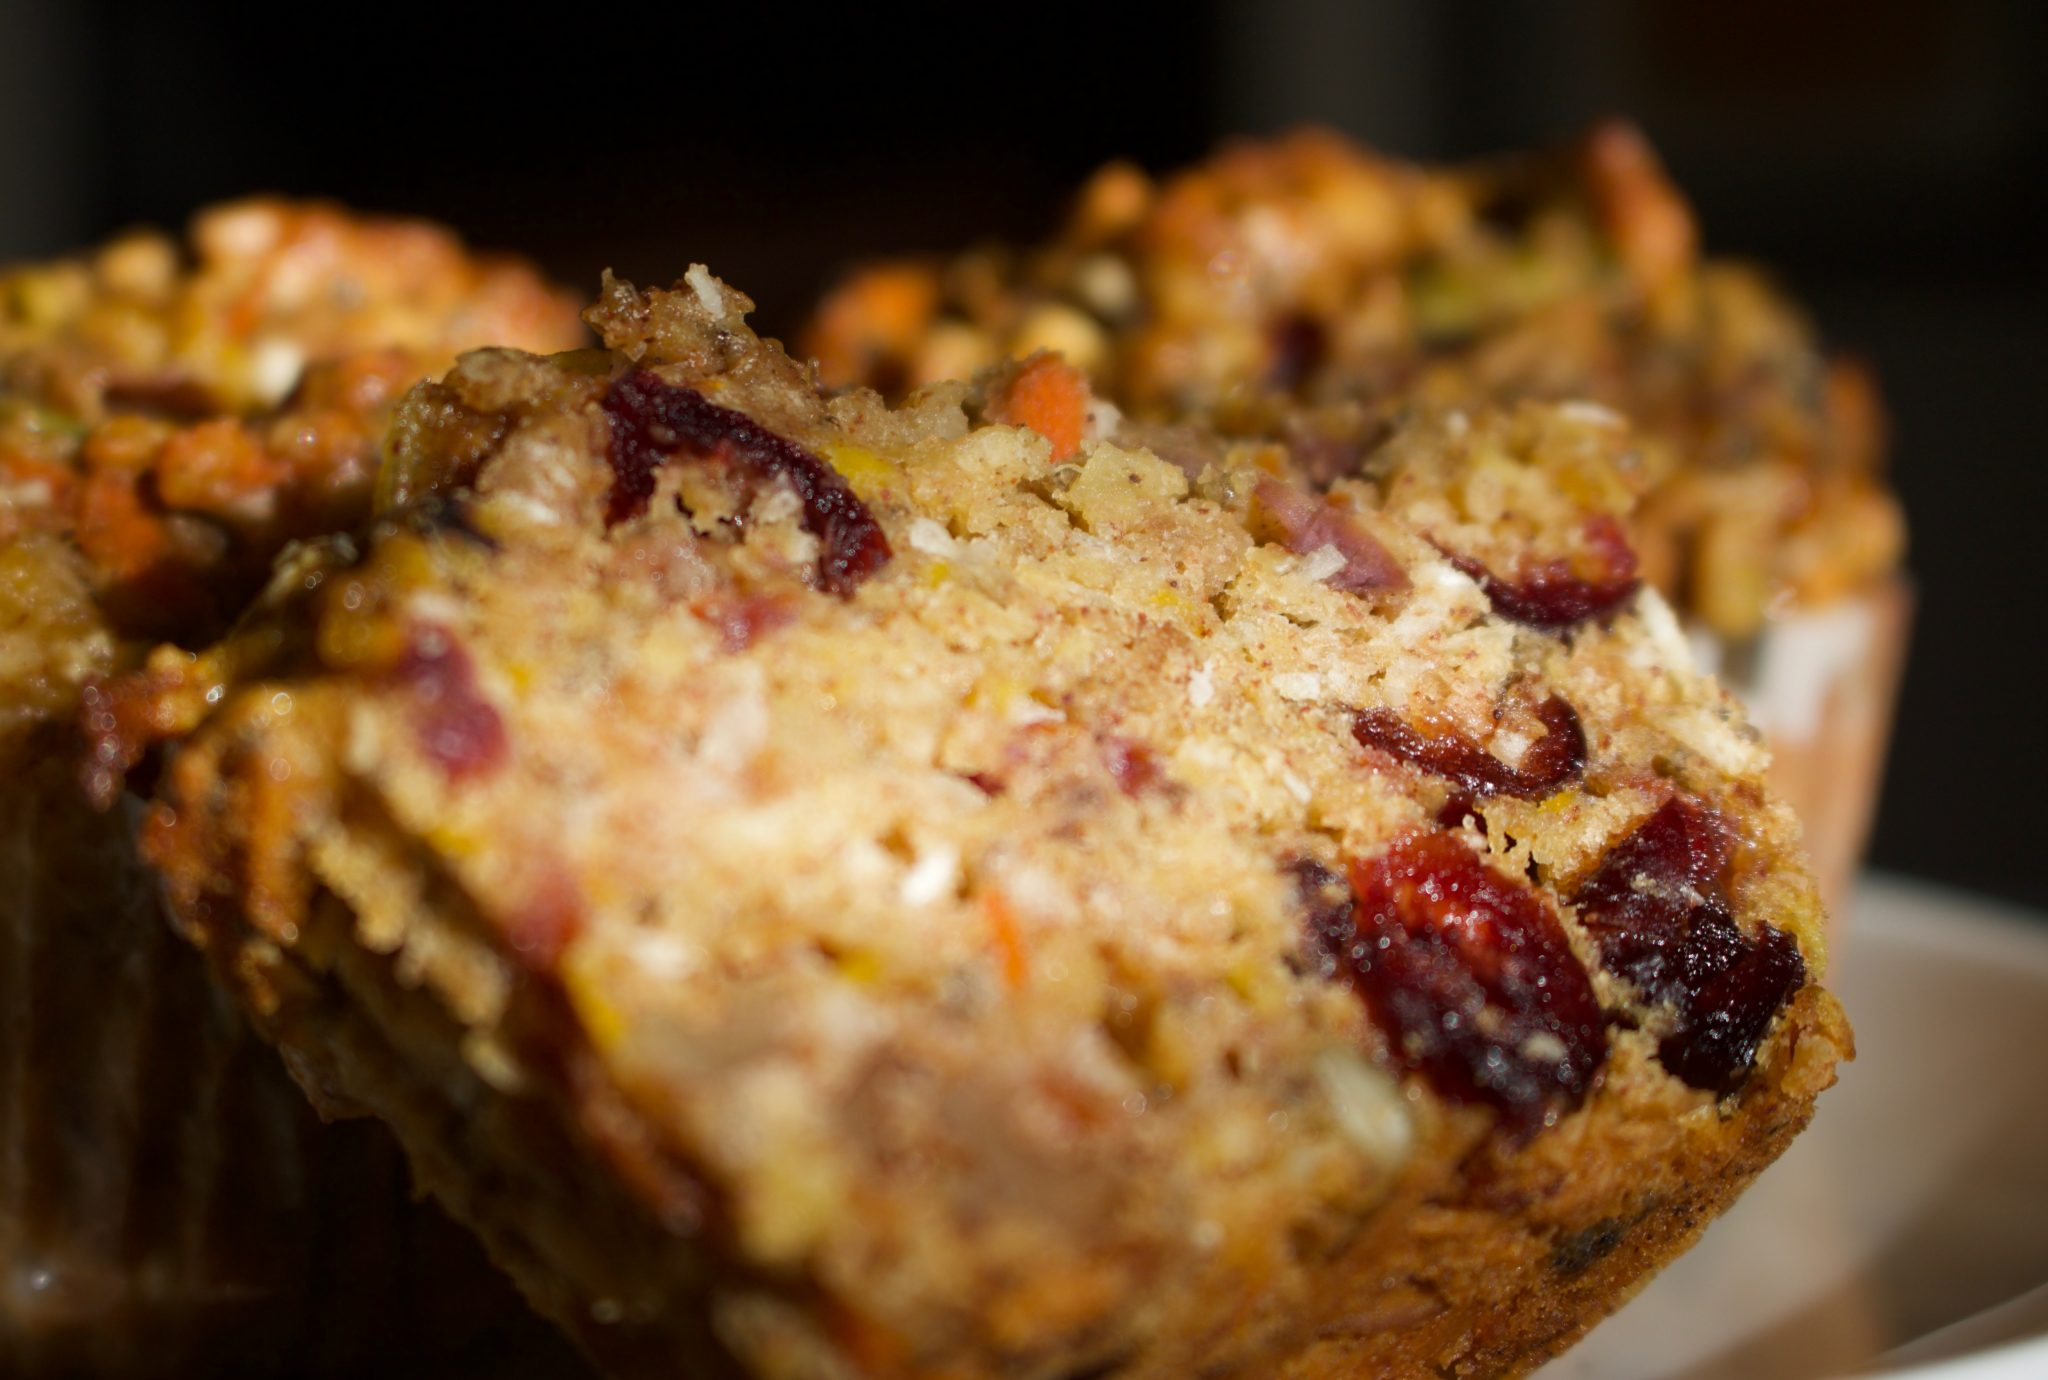 healthy muffins with nuts, seeds, fruit, veggies